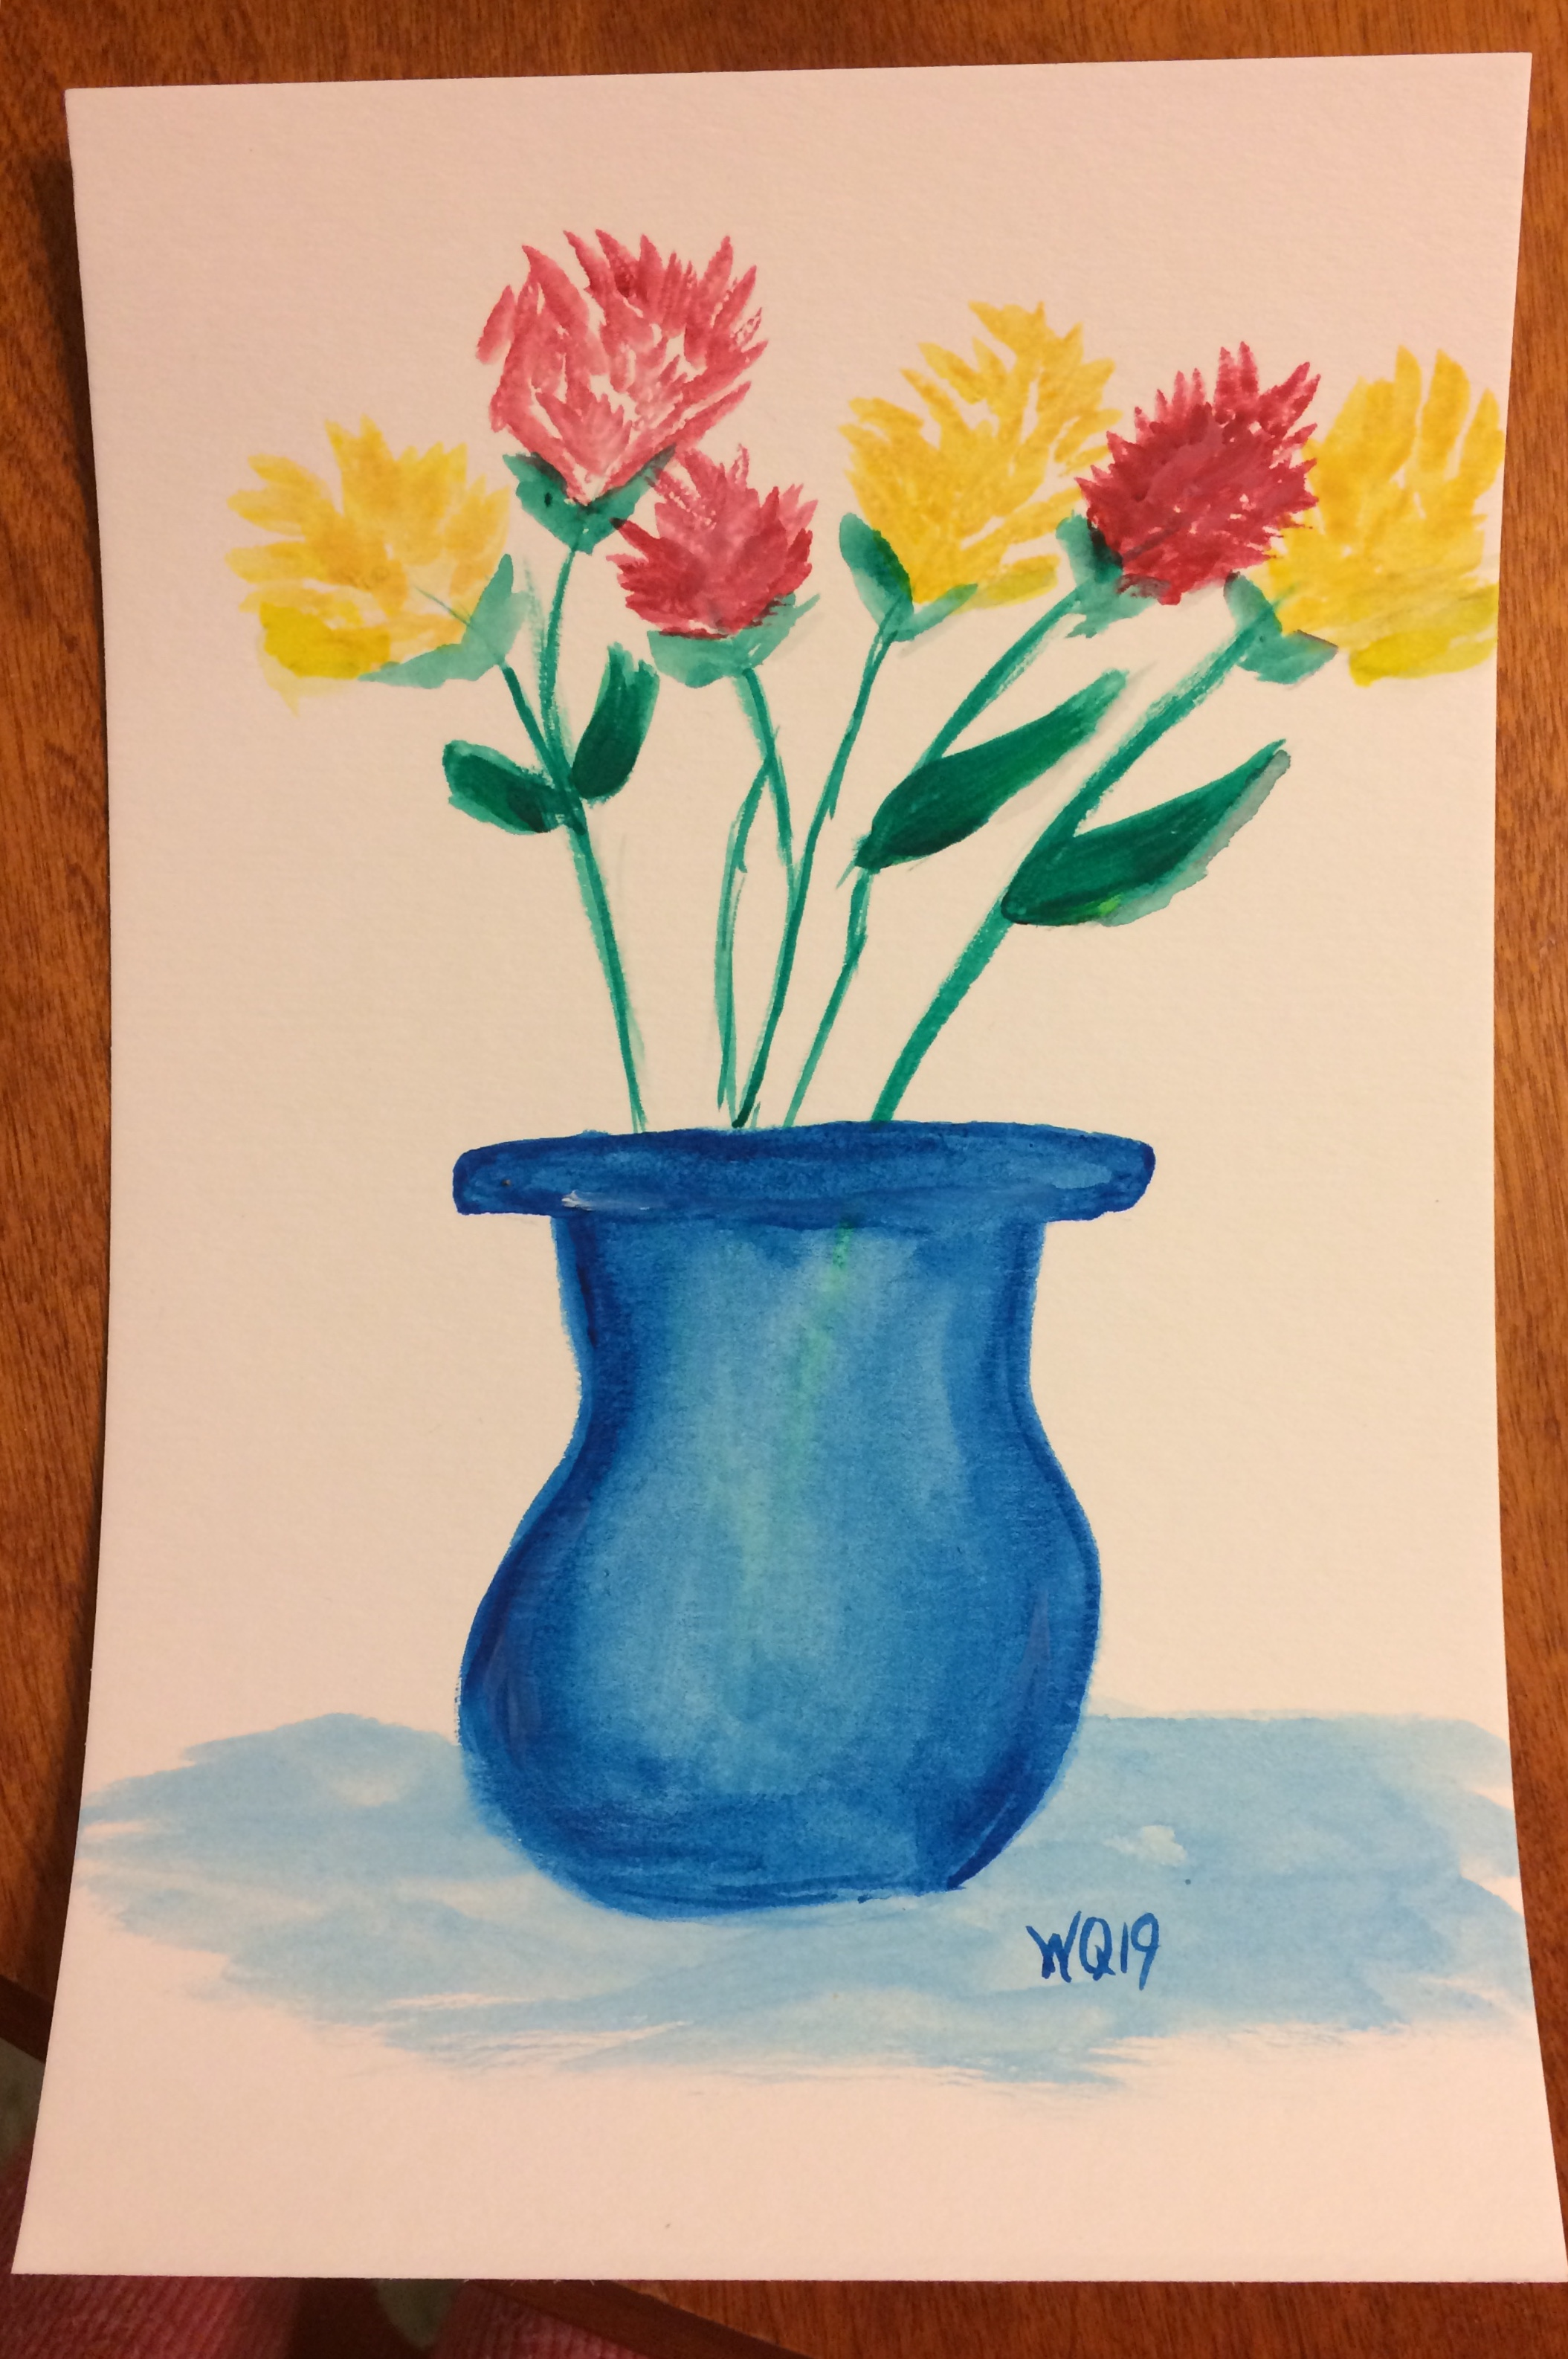 watercolour painting of flowers in a vase.